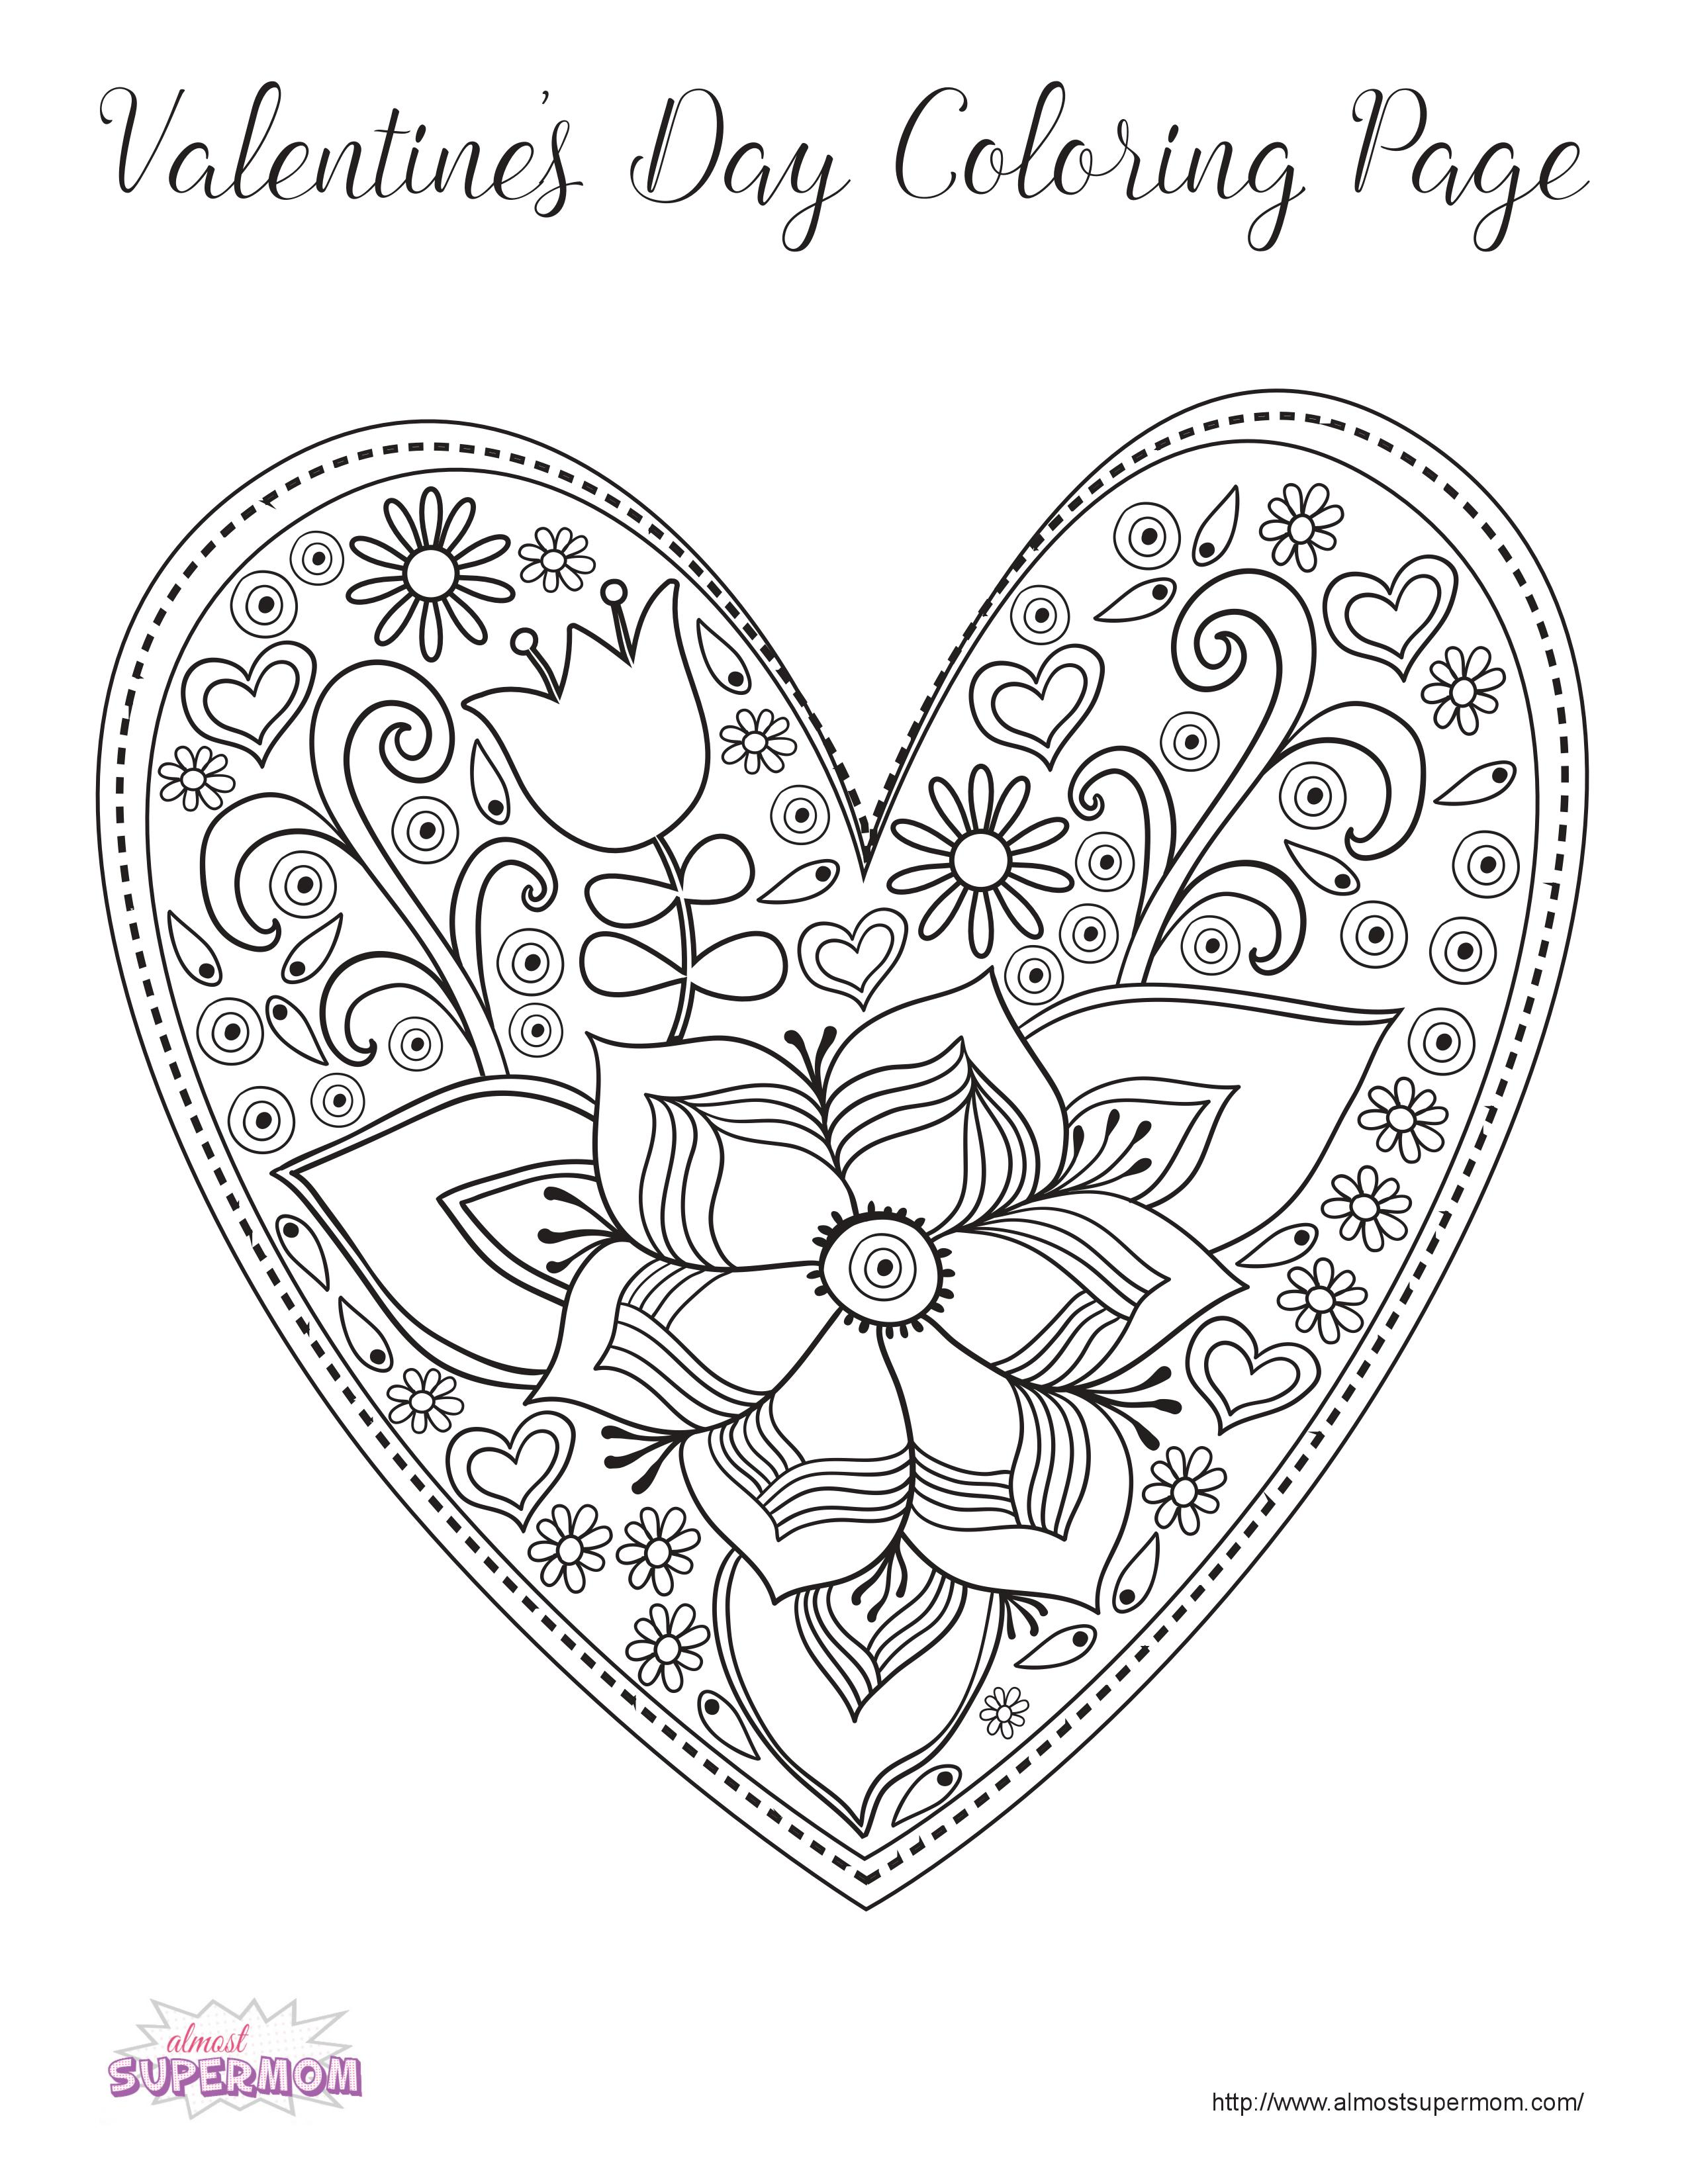 FREE Valentine 39 s Day Coloring Pages for Grown Ups Almost